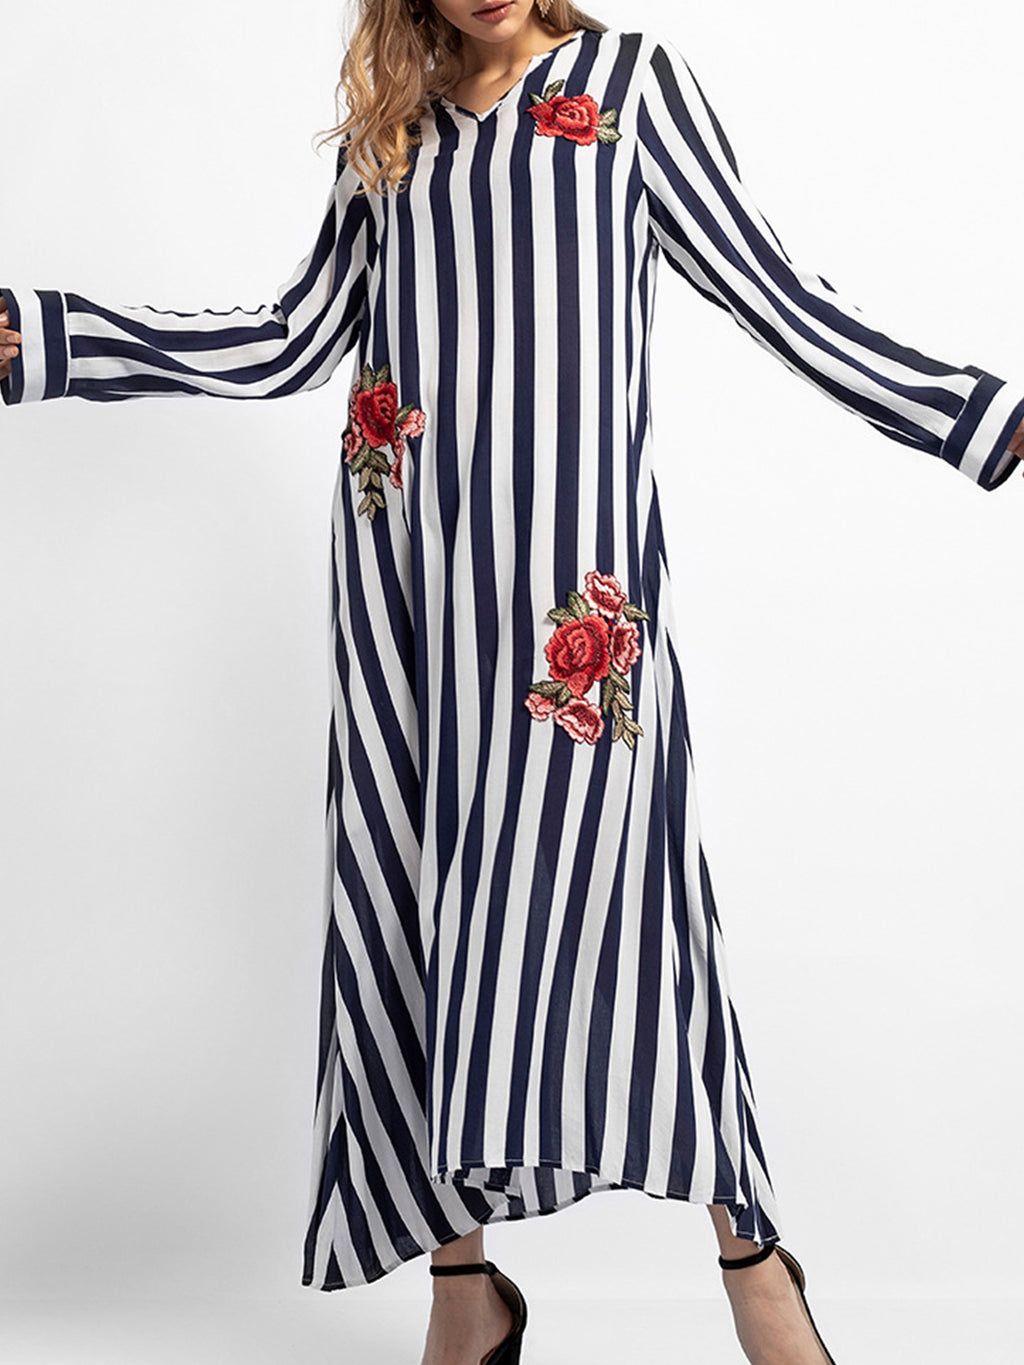 Stripe Printed Floral Embroidery Cotton Long Sleeve A-line Dress